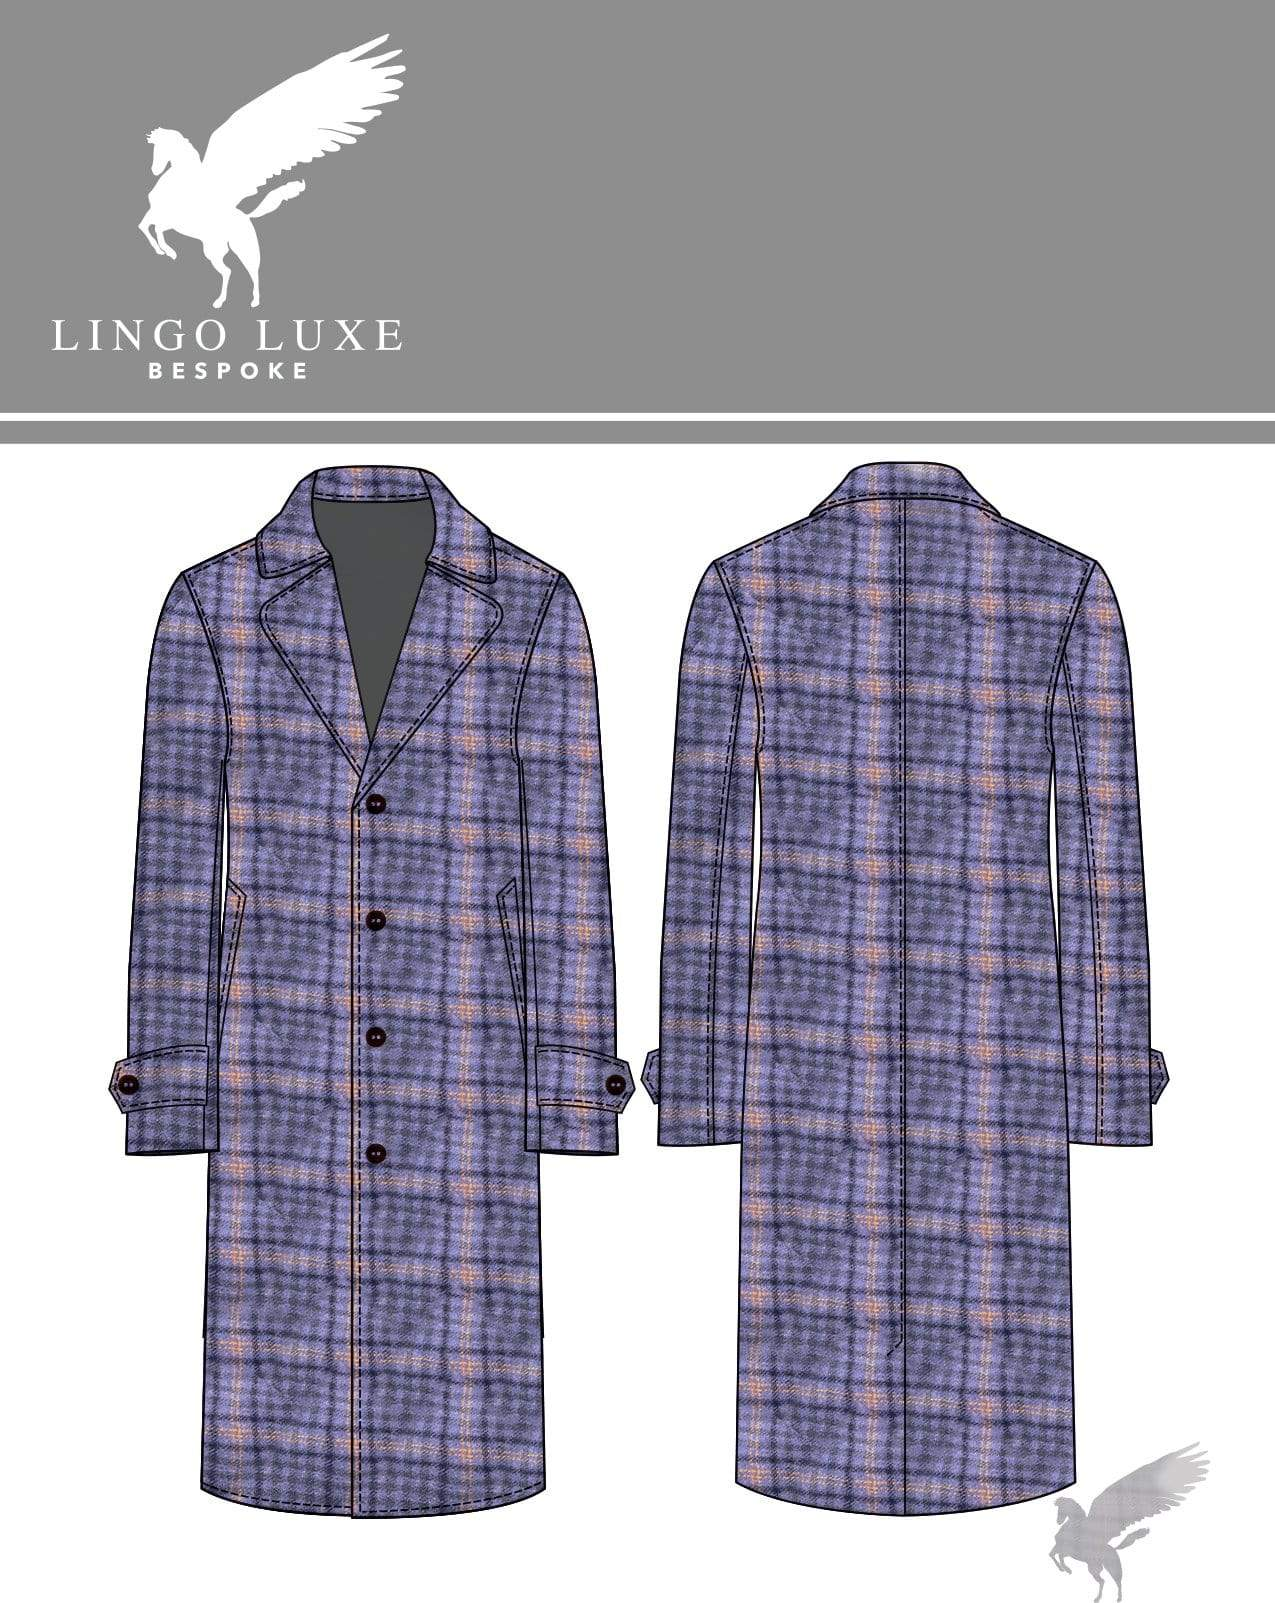 Outerwear | Lingo Luxe The Stately Overcoat | Purple Hazey-Lingo Luxe Bespoke